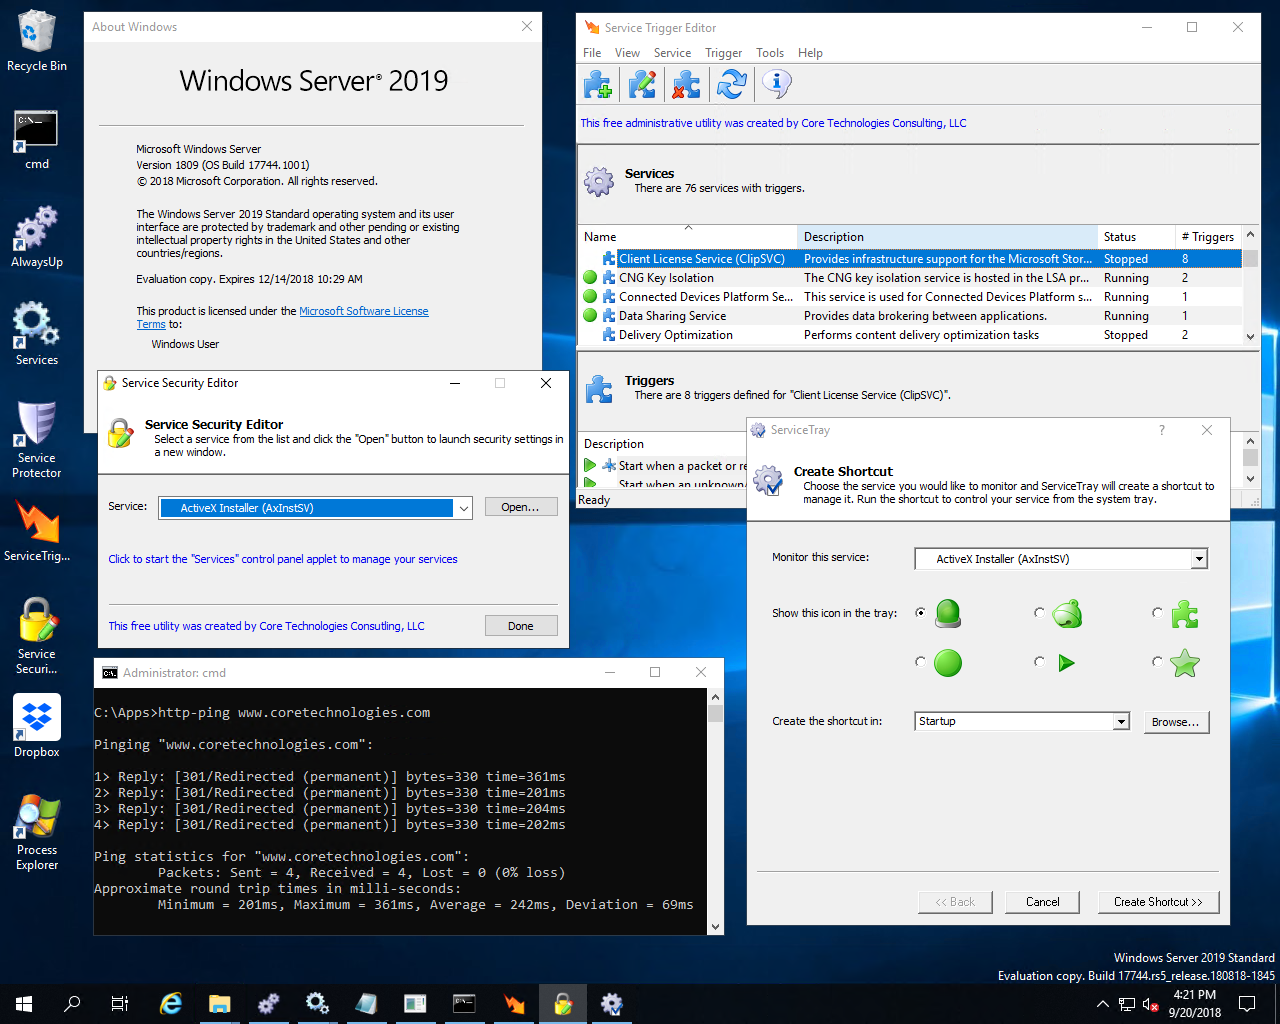 Utilities running on Windows Server 2019